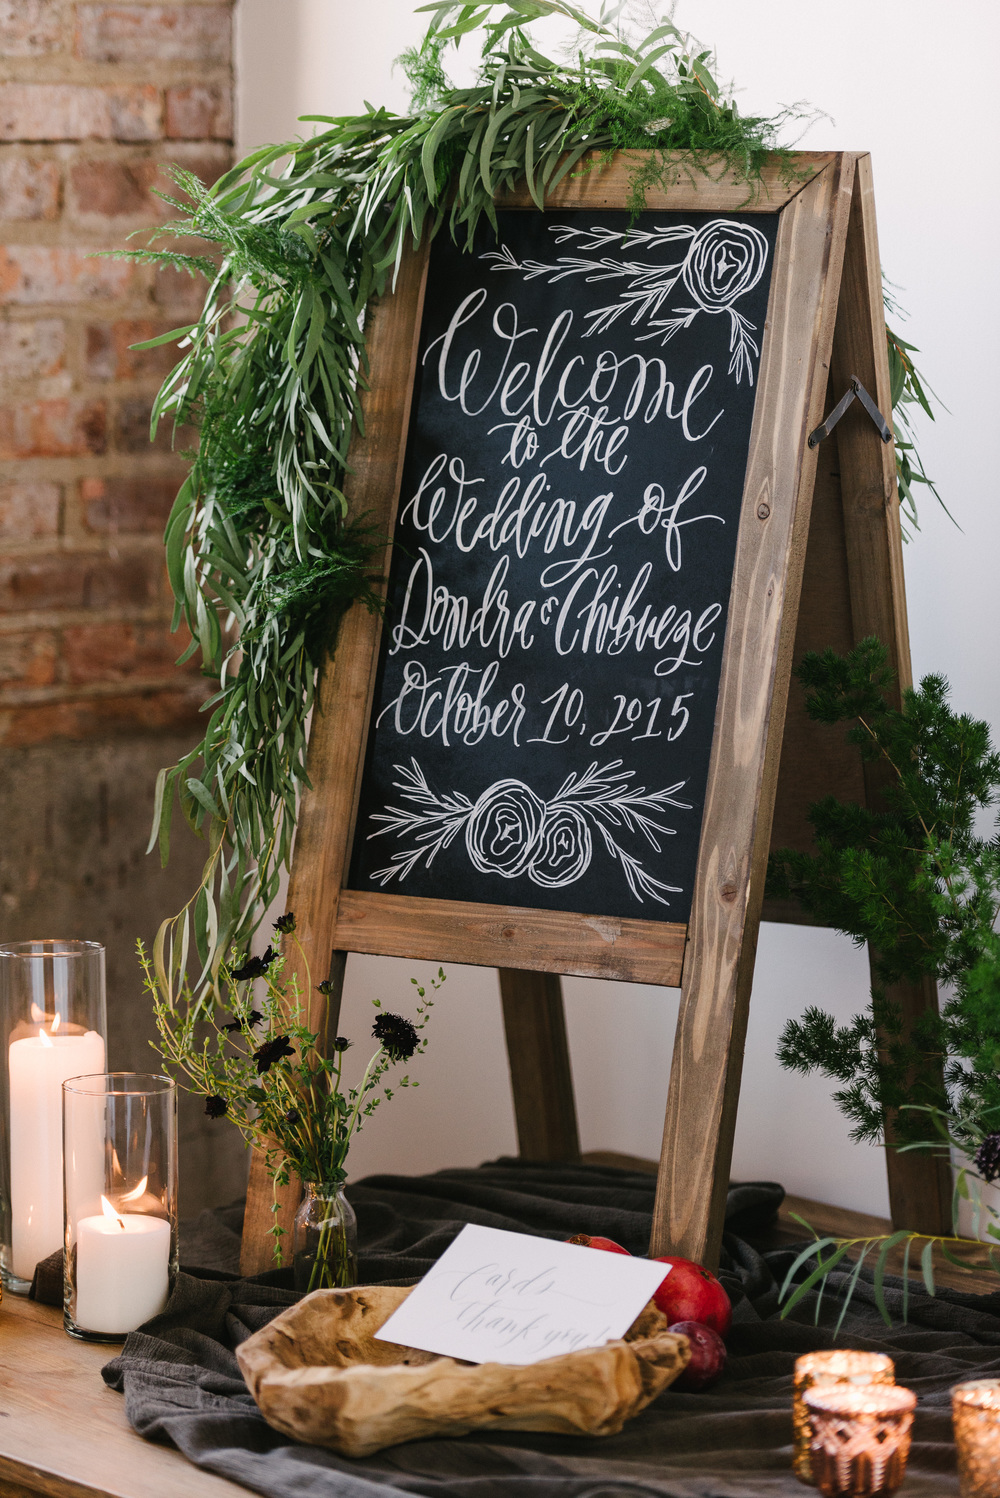 garland on wedding sign.jpg